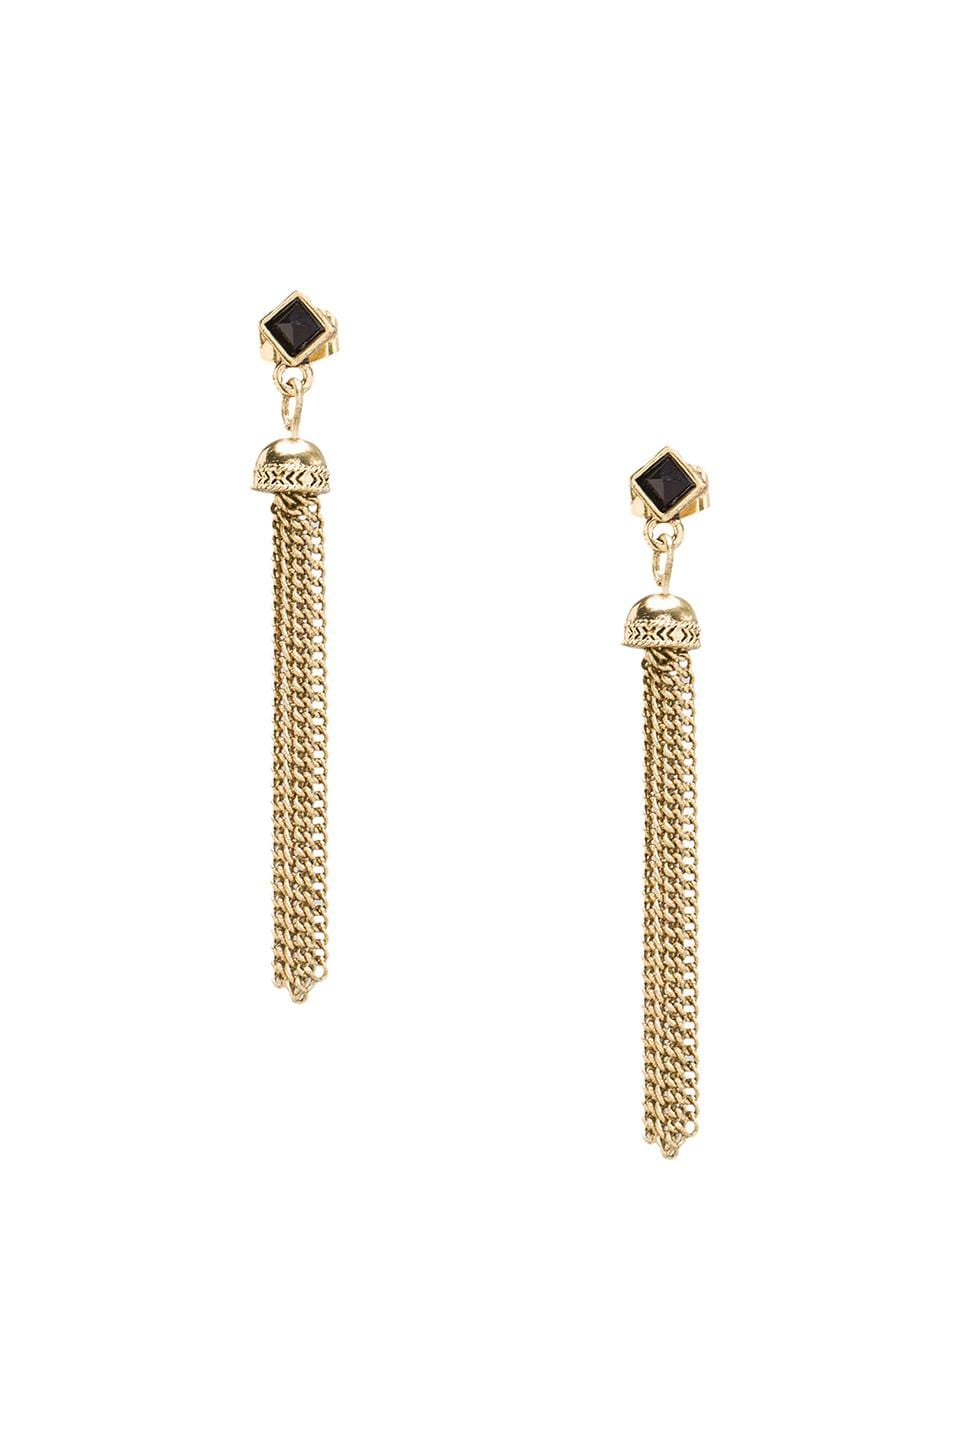 House of Harlow 1960 House of Harlow Chainette Earrings in Gold